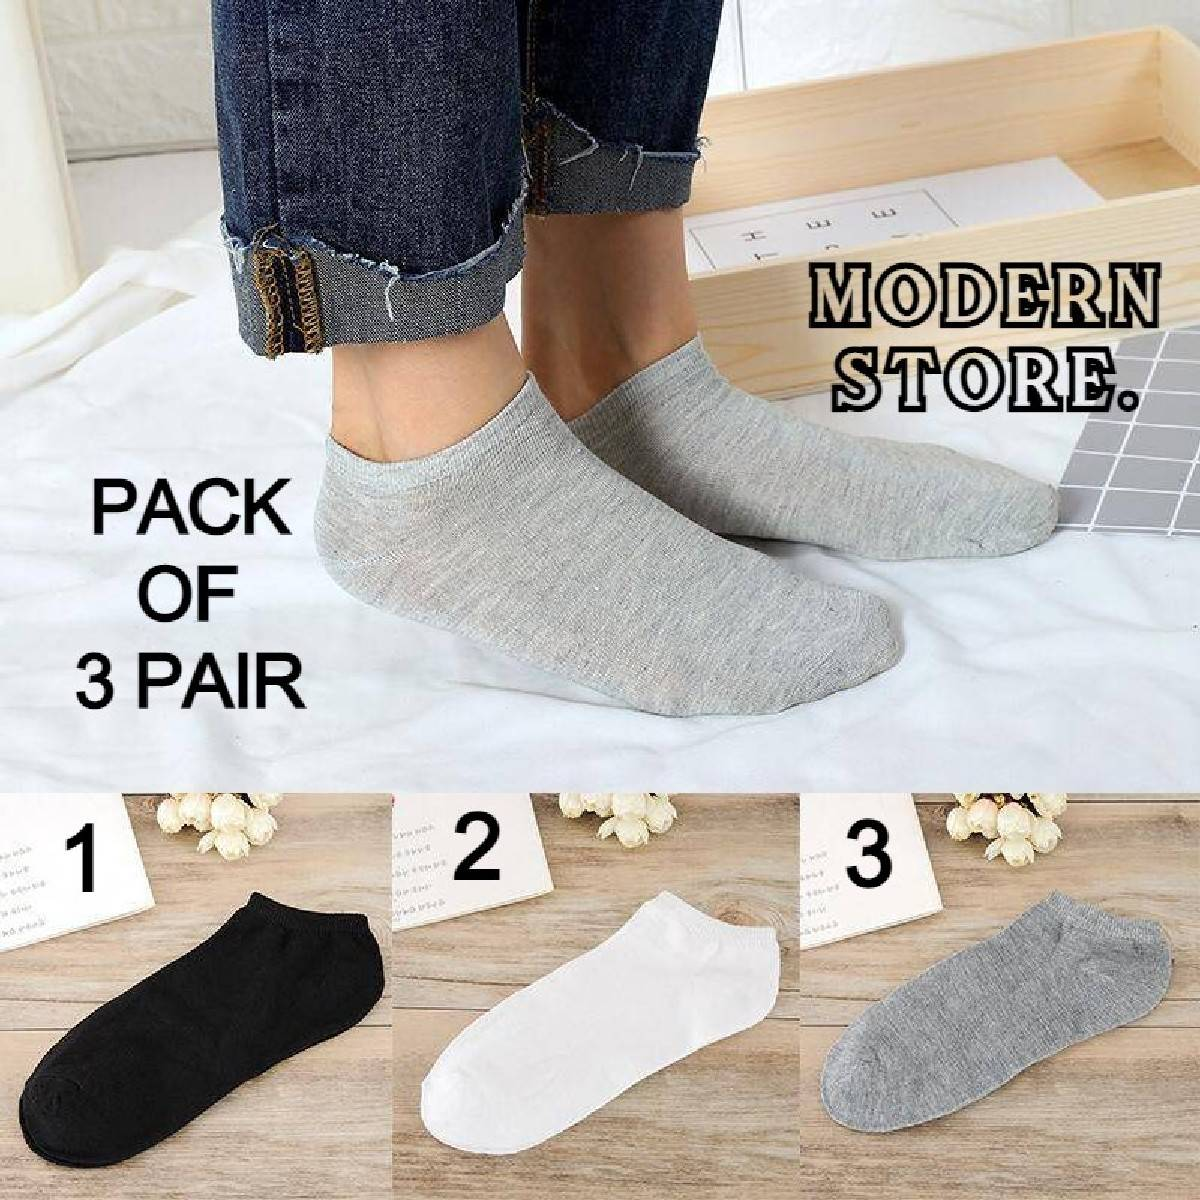 Pack Of 3 - 6 - 9 - 12 Imported Cotton Unisex Ankle Socks